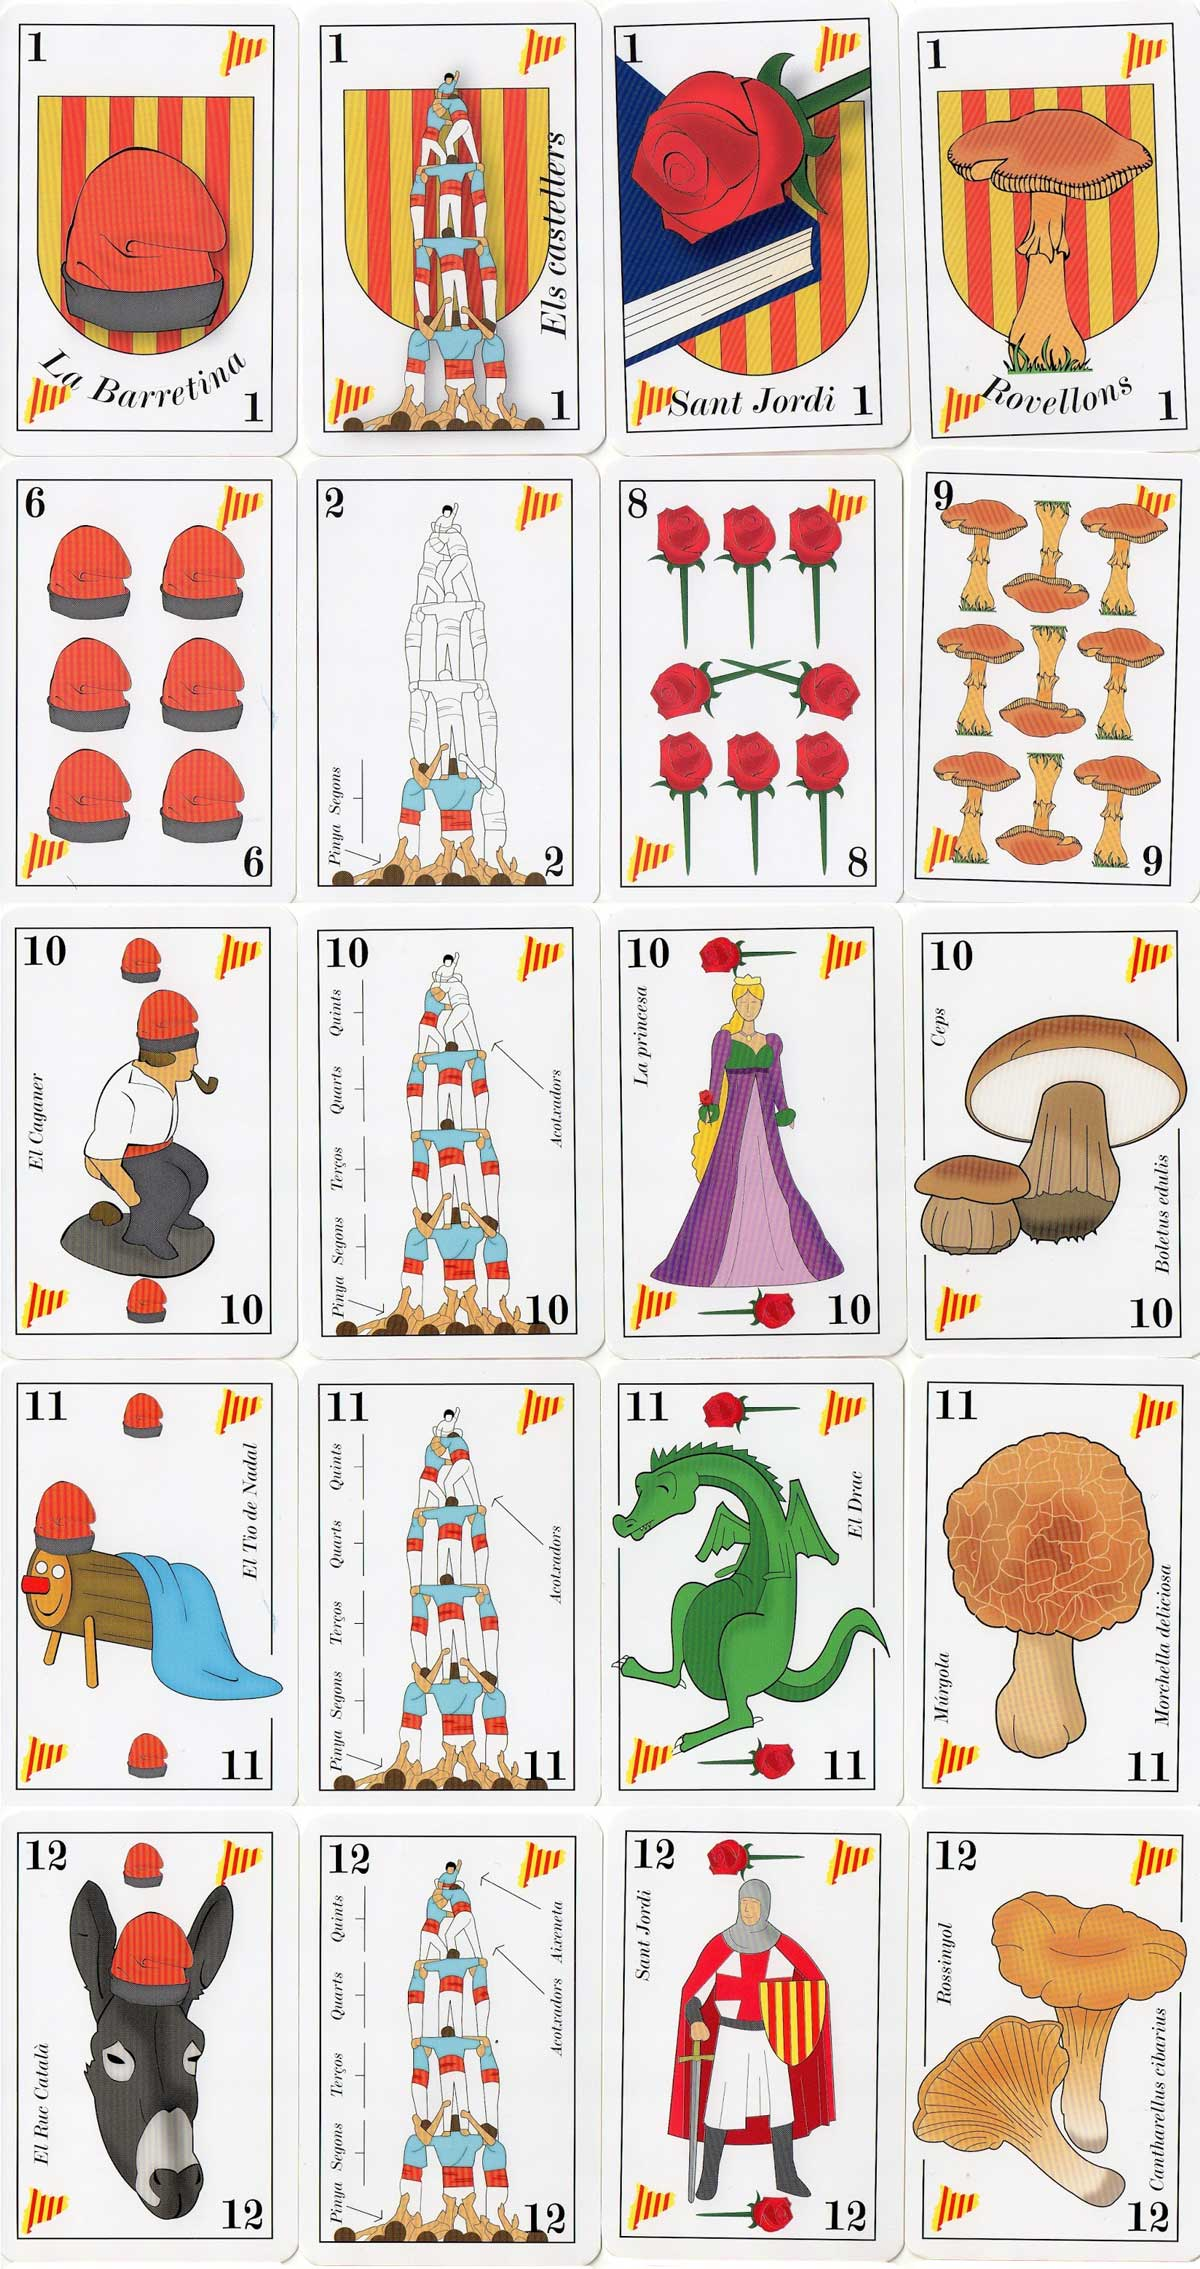 'Baraja Catalana' playing cards published by Varitemas